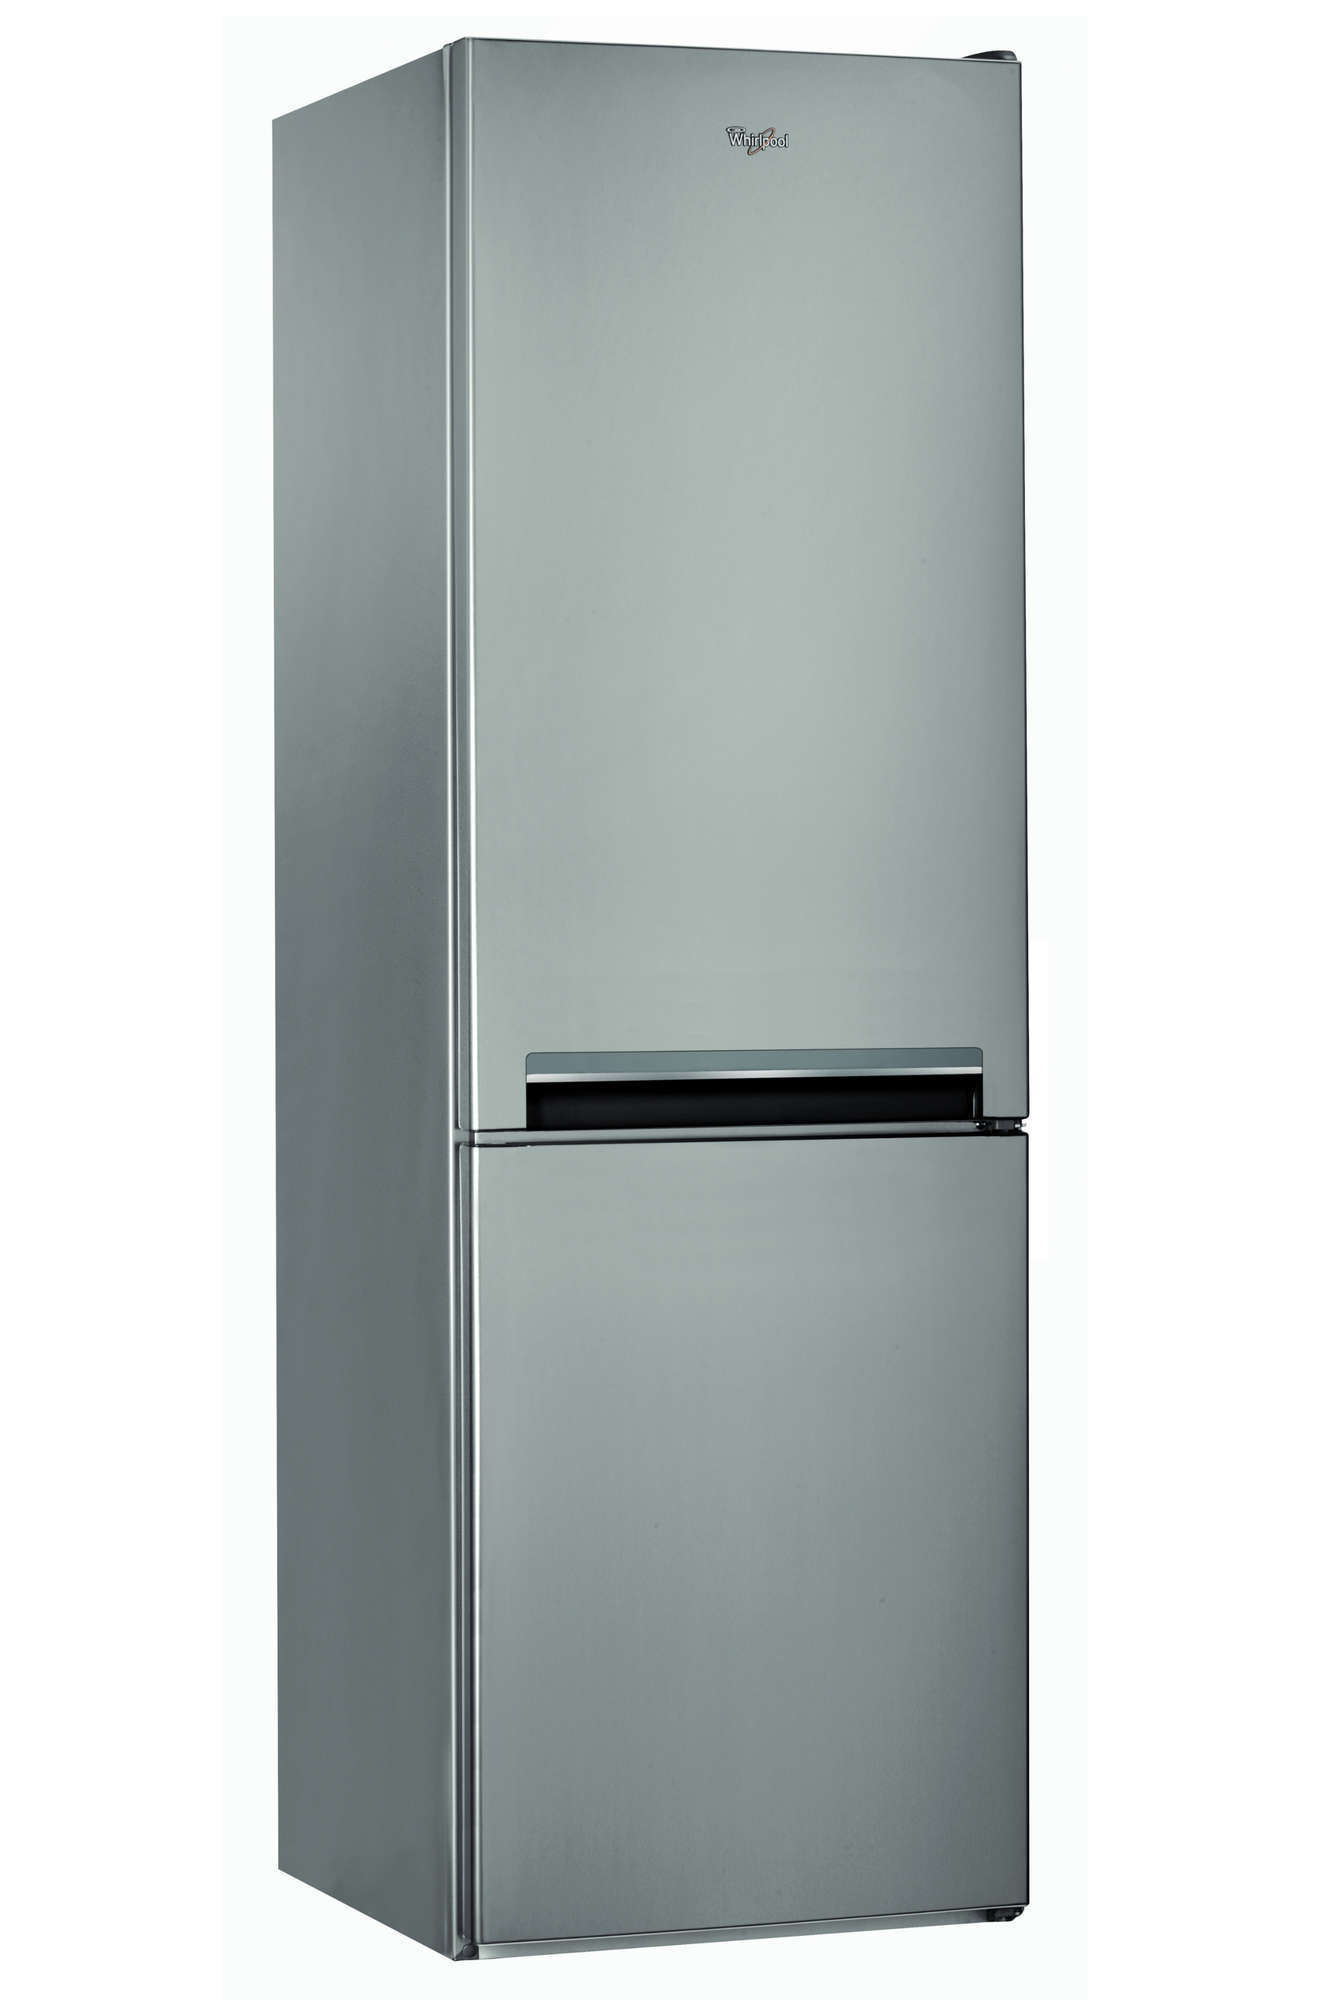 refrigerateur congelateur en bas whirlpool bsnf8101ox | darty